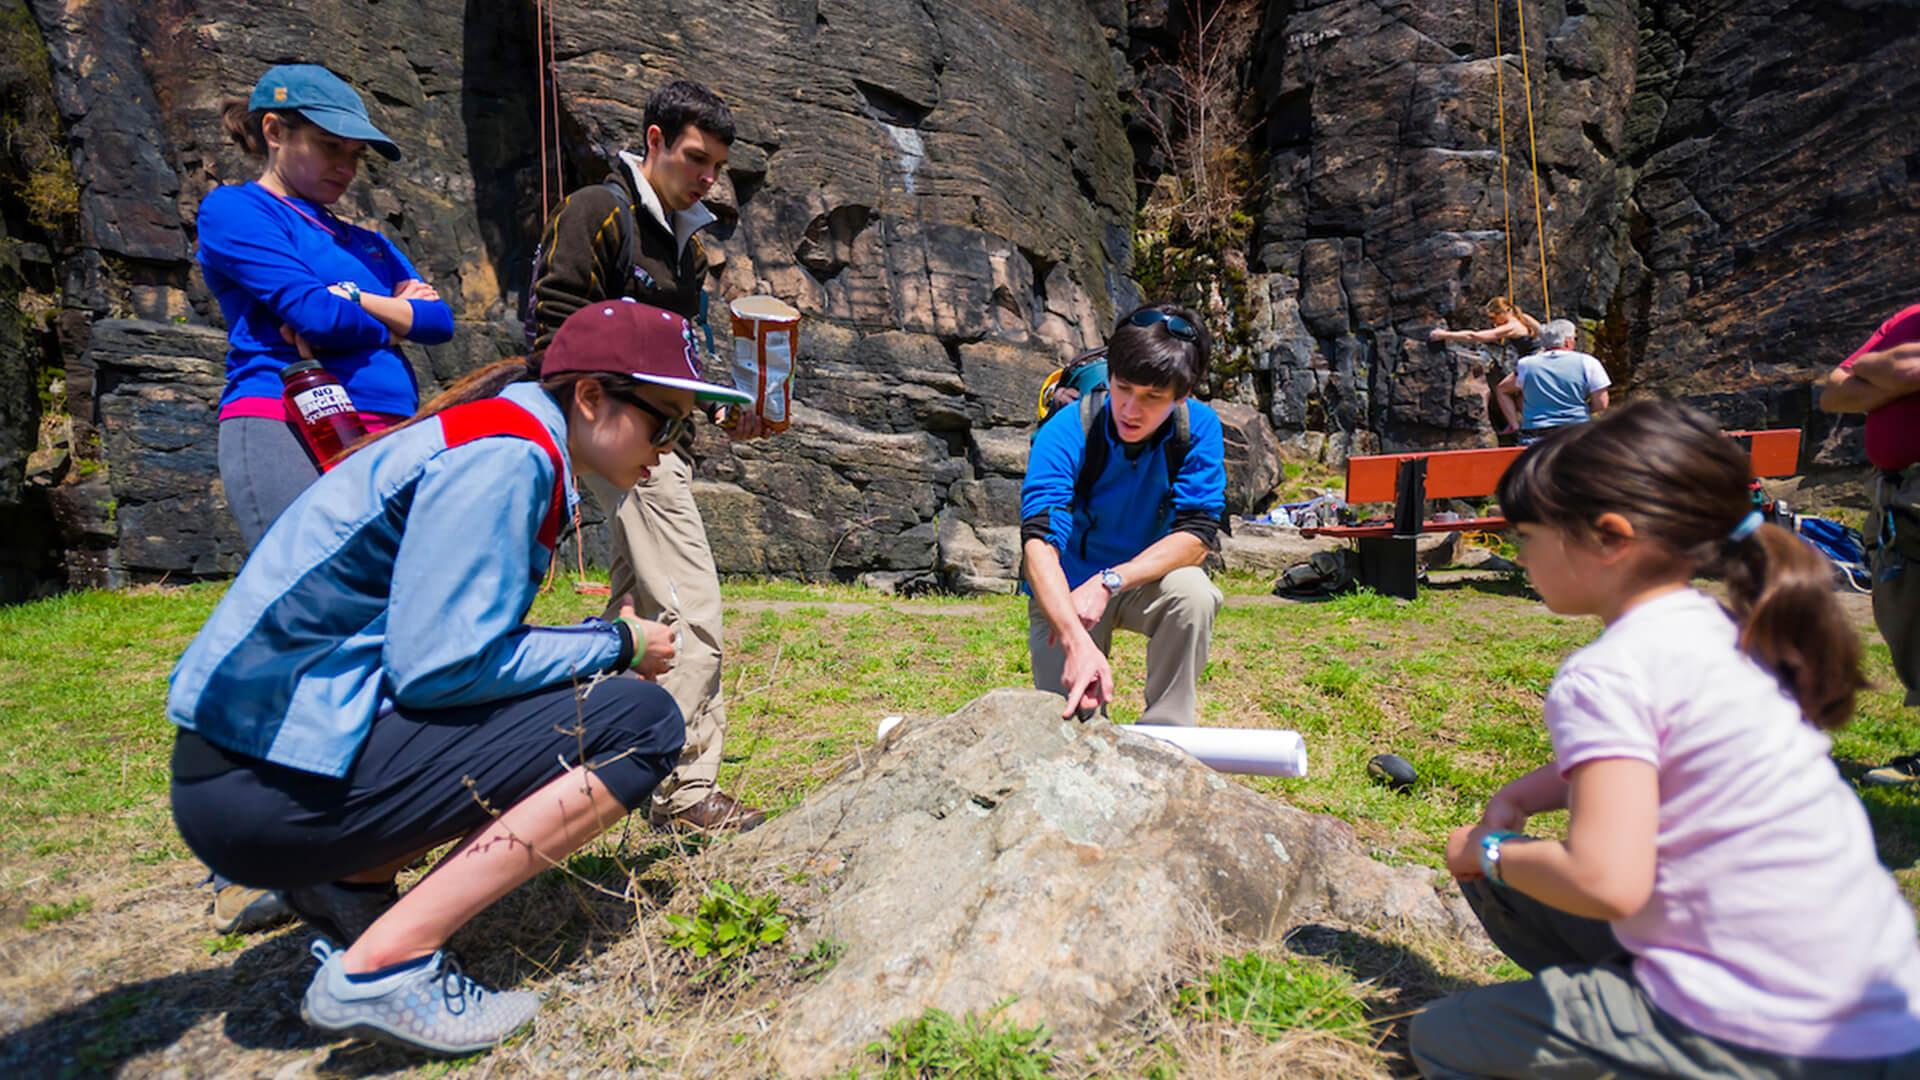 Students and faculty members spend an afternoon lab exploring the geology of Moss Island in Little Falls, N.Y., with geology professor Martin Wong.